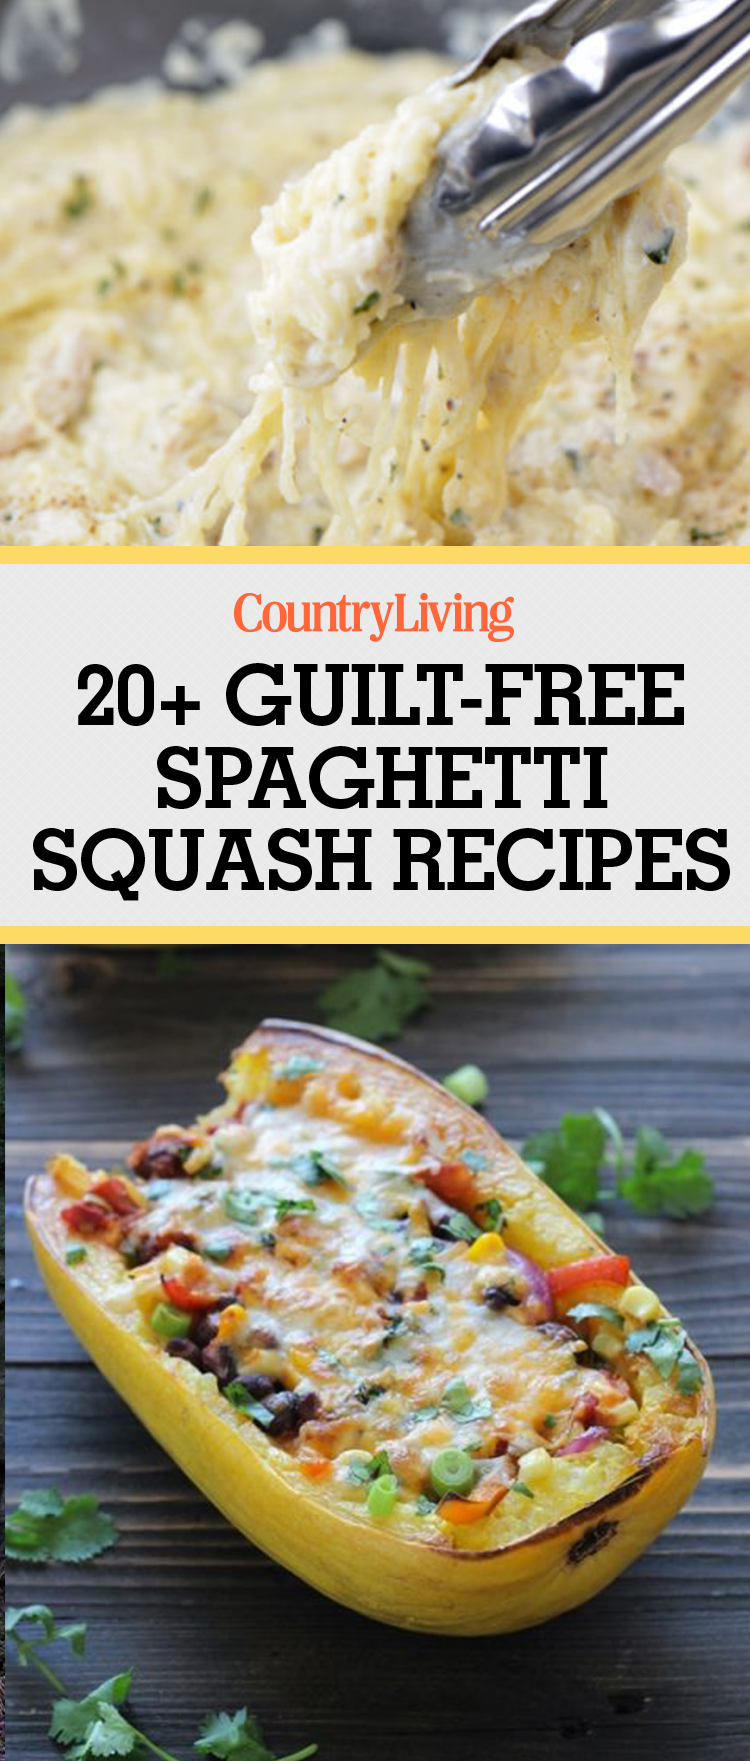 spaghetti squash recipes healthy eating easy dinner pasta food cheap countryliving vegetable living meals recipe country spagetti clean pros cons